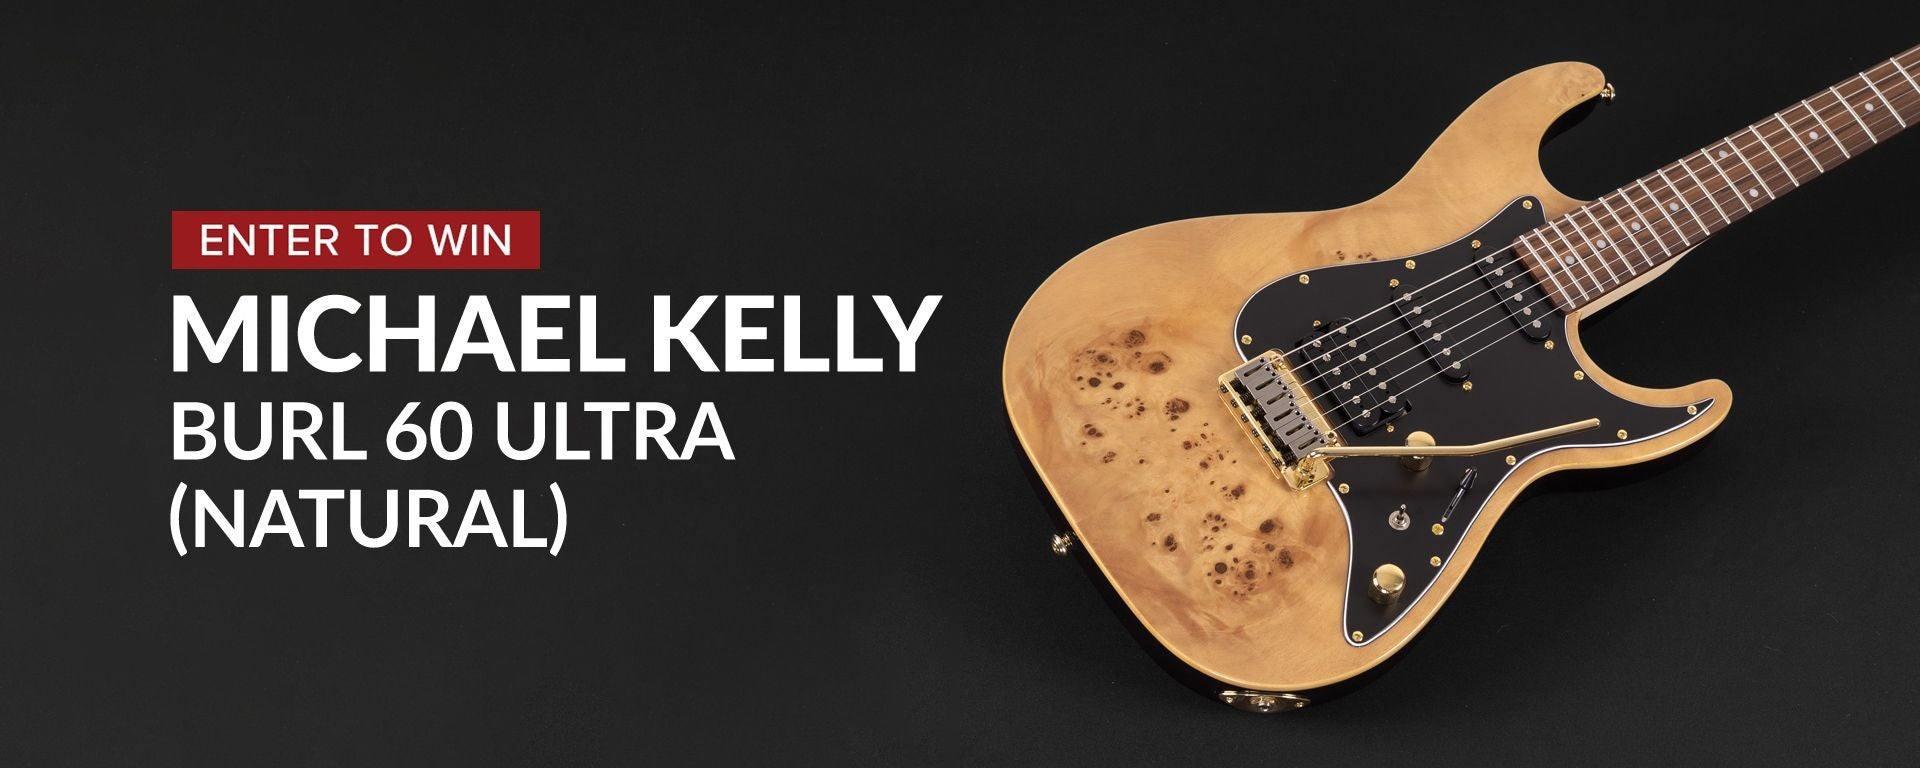 Enter to Win a Michael Kelly Burl 60 Ultra Electric Guitar